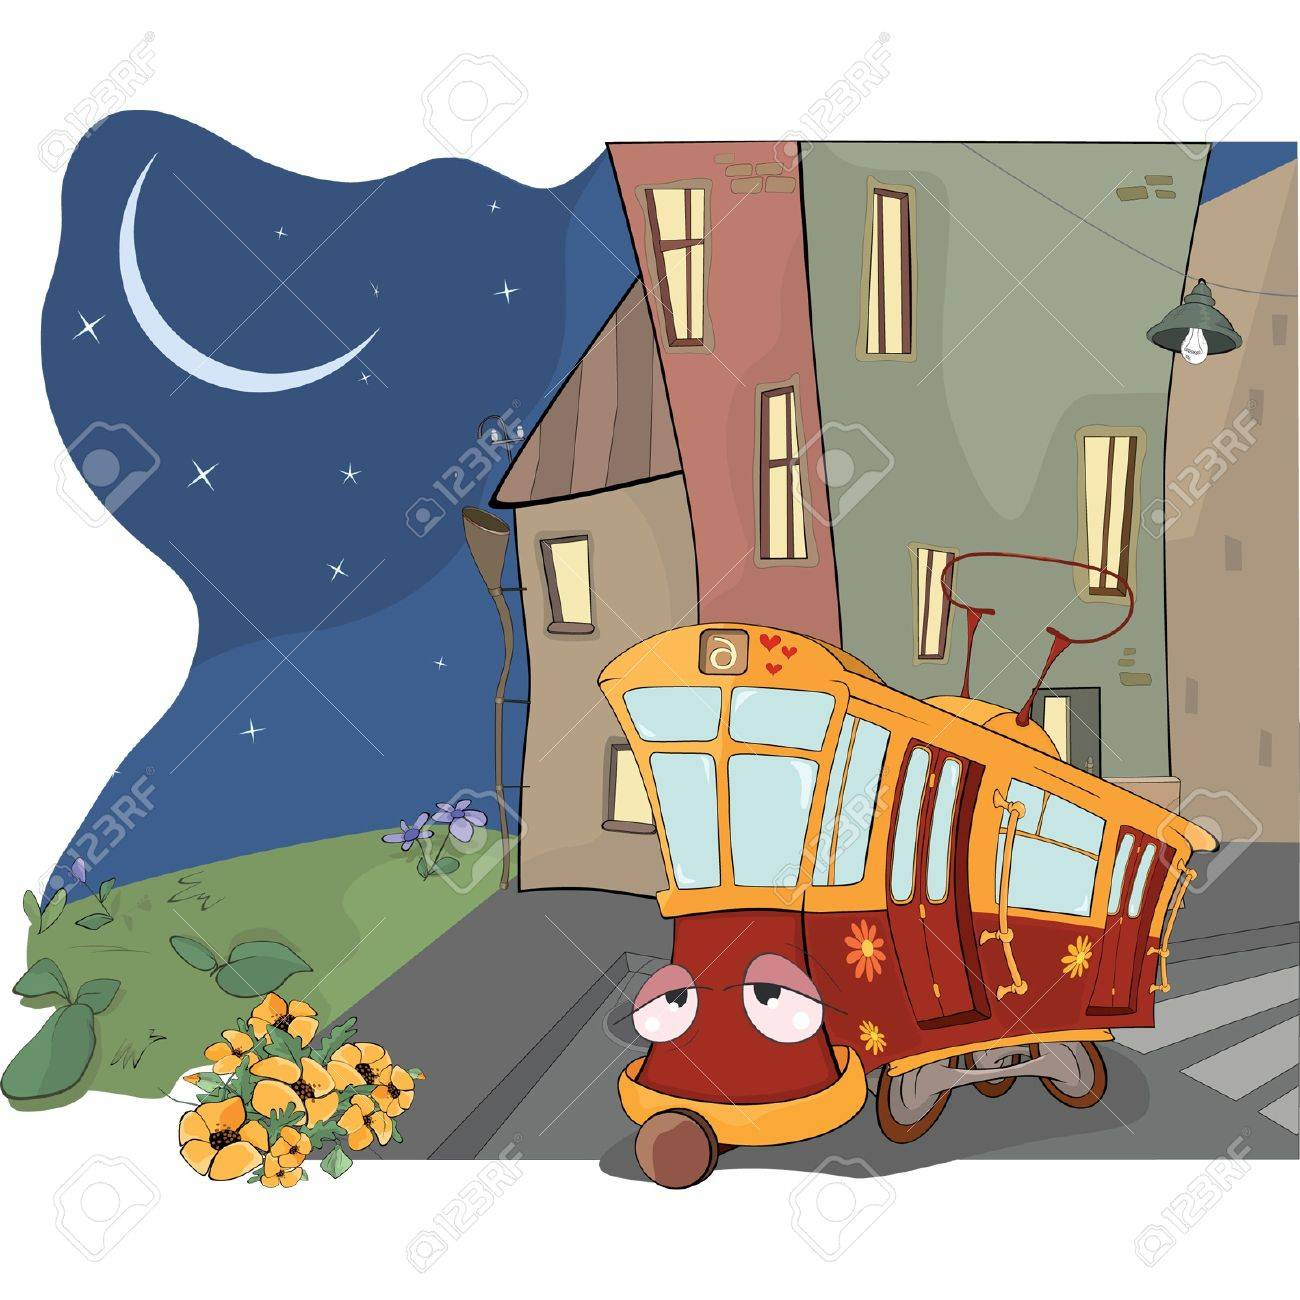 Fairy tale on a tired red tram Stock Vector - 13814523